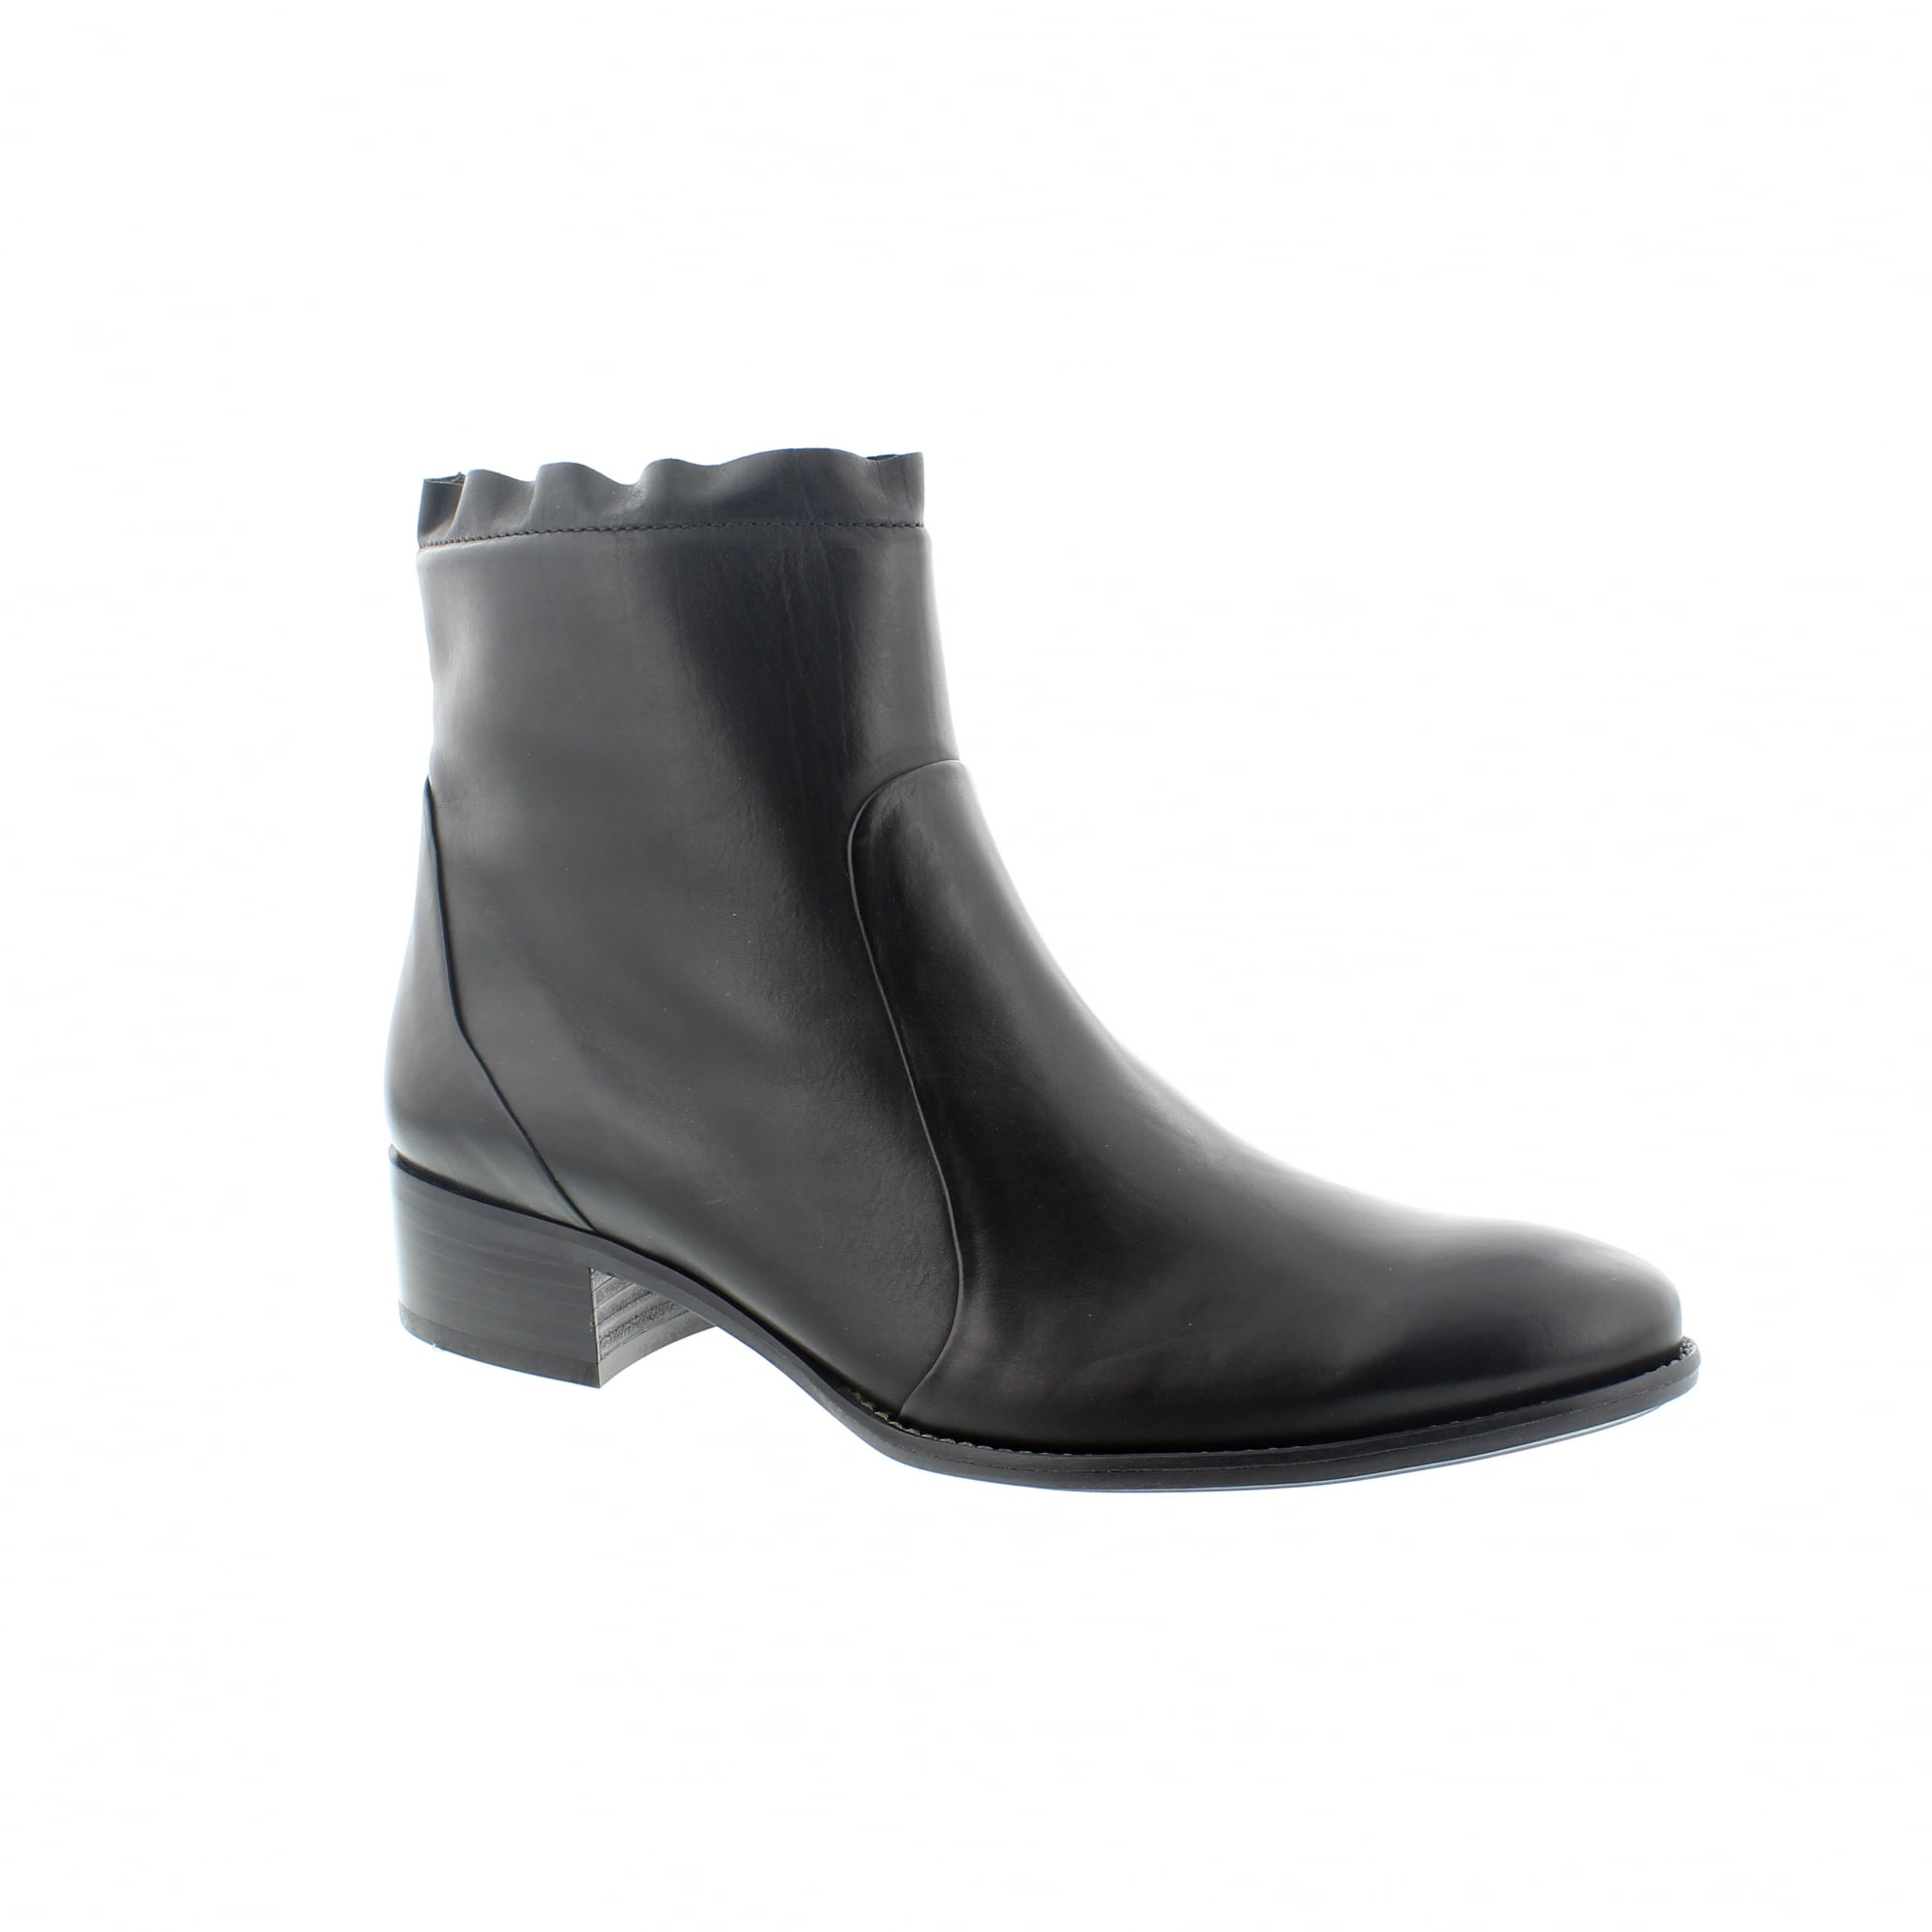 cfe120eb28c Paul Green 8063-023 Black Leather Ankle Boots | Rogerson Shoes